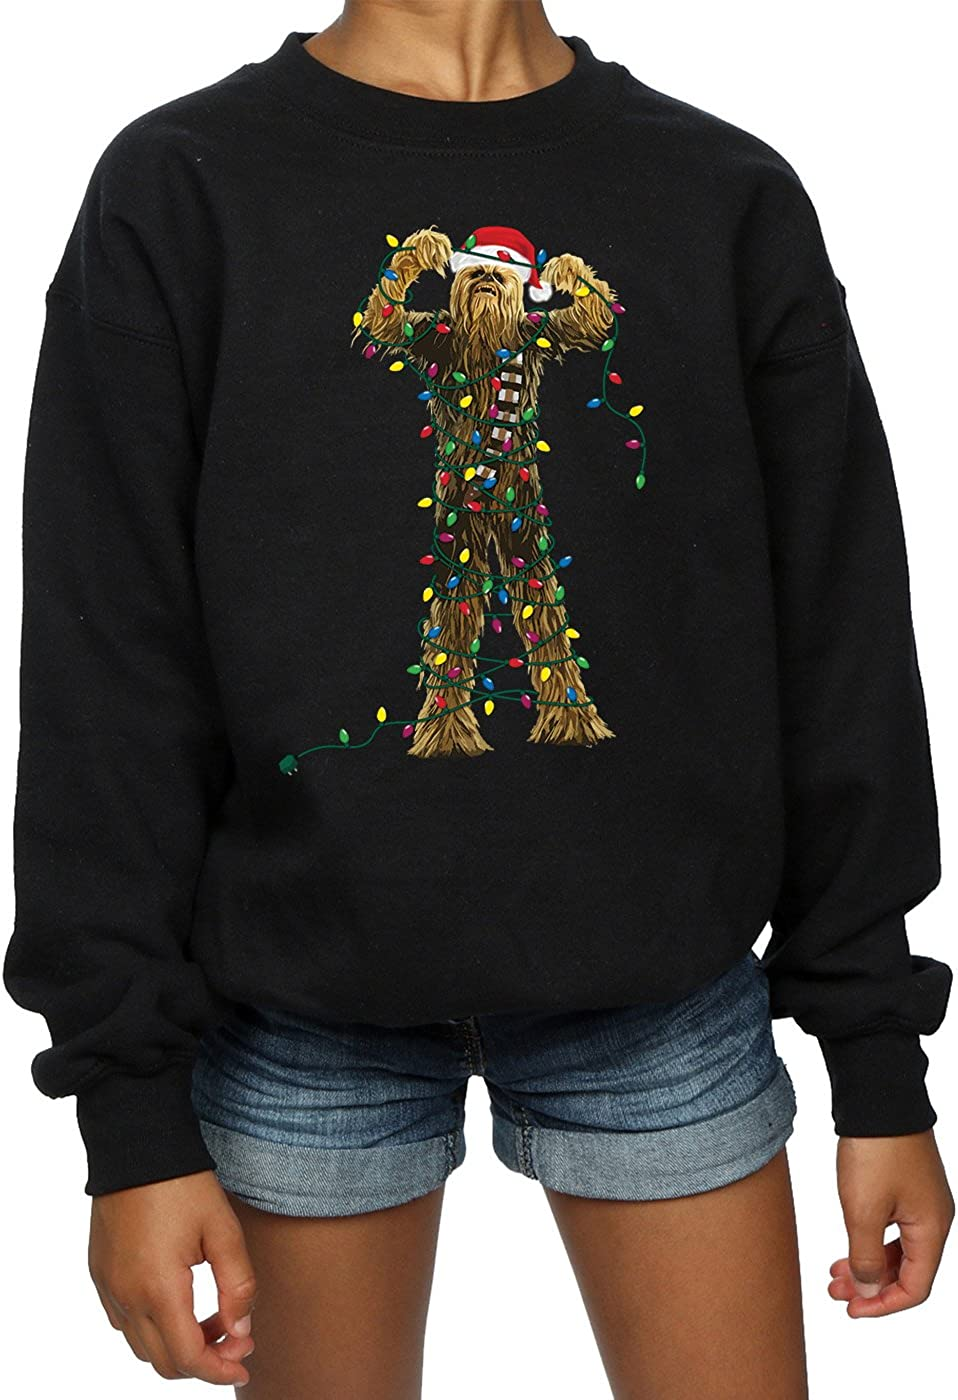 Star Wars Girls Chewbacca Christmas Lights Sweatshirt 9-11 Years Black